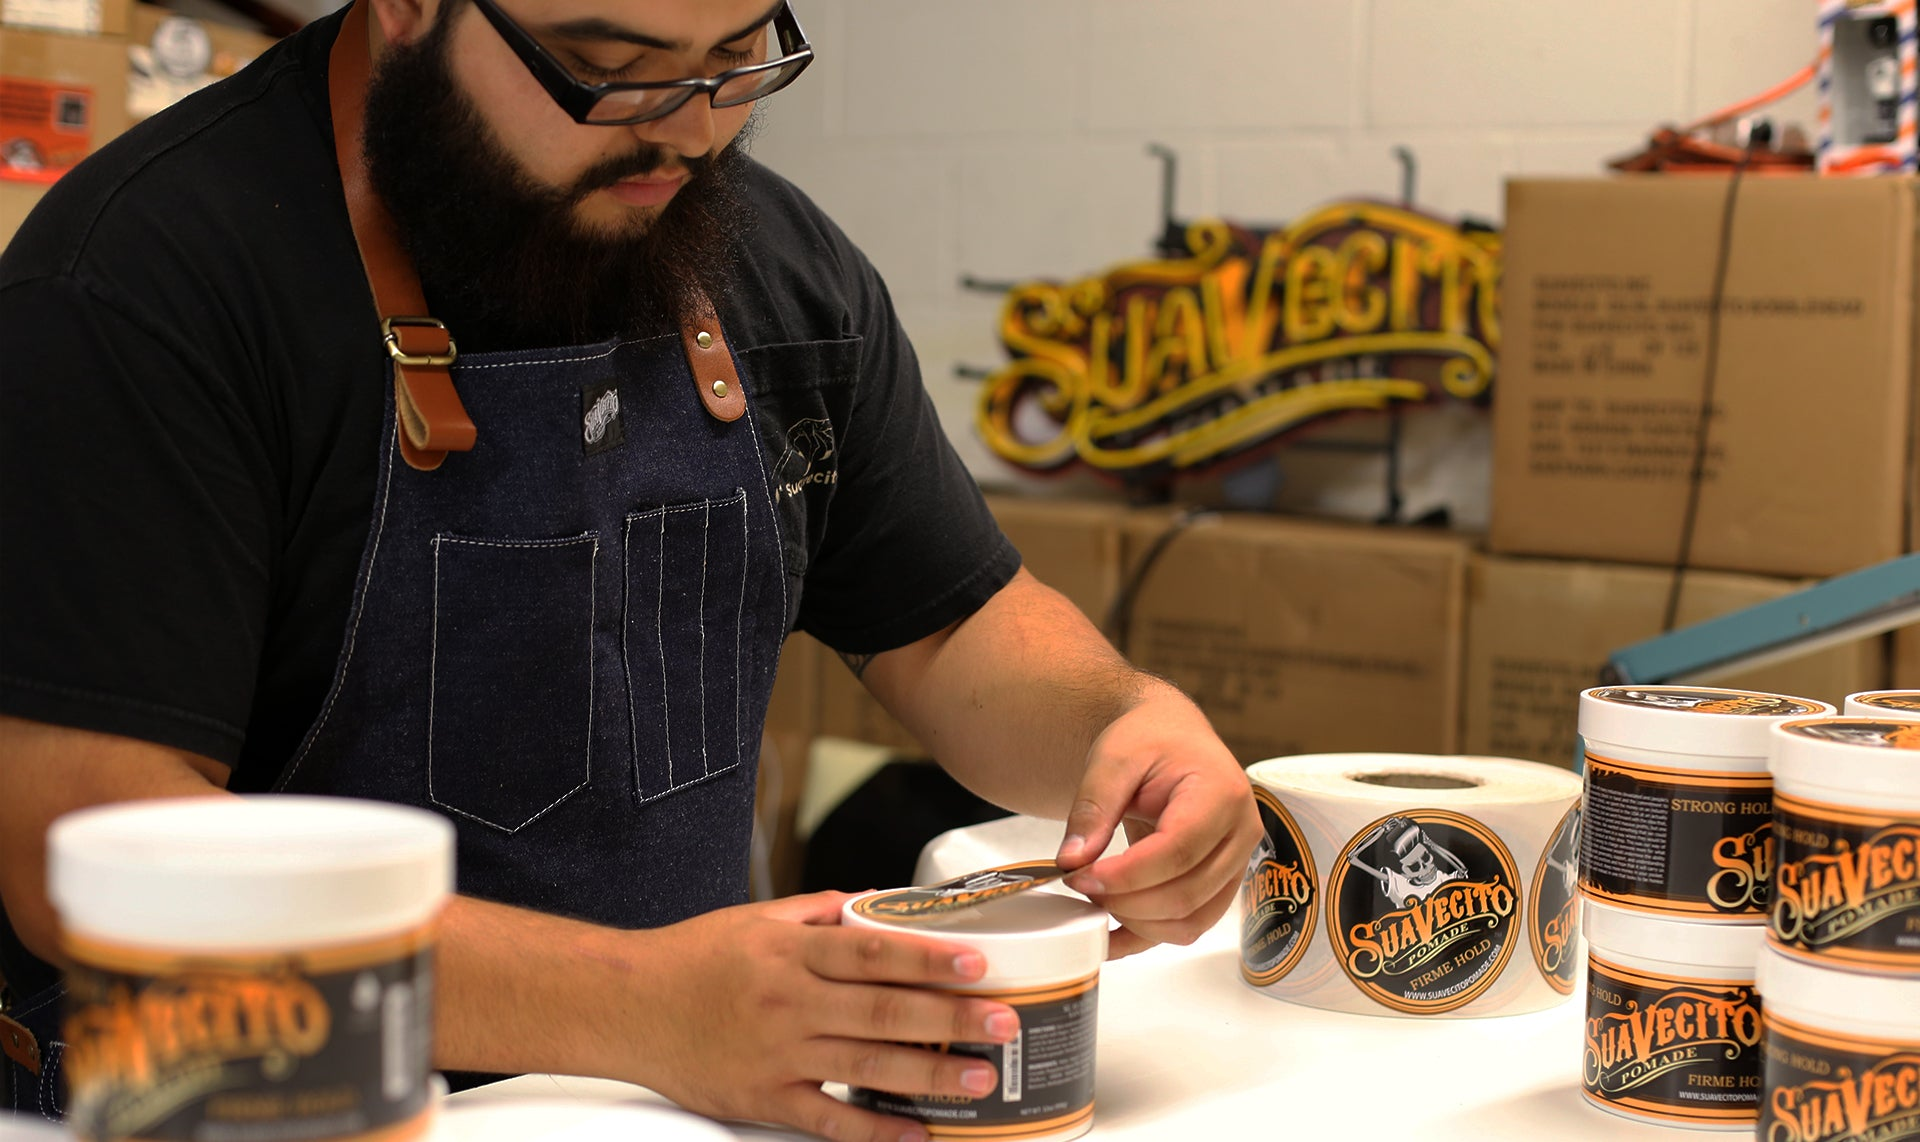 Worker Wearing Suavecito Work Apron in Denim